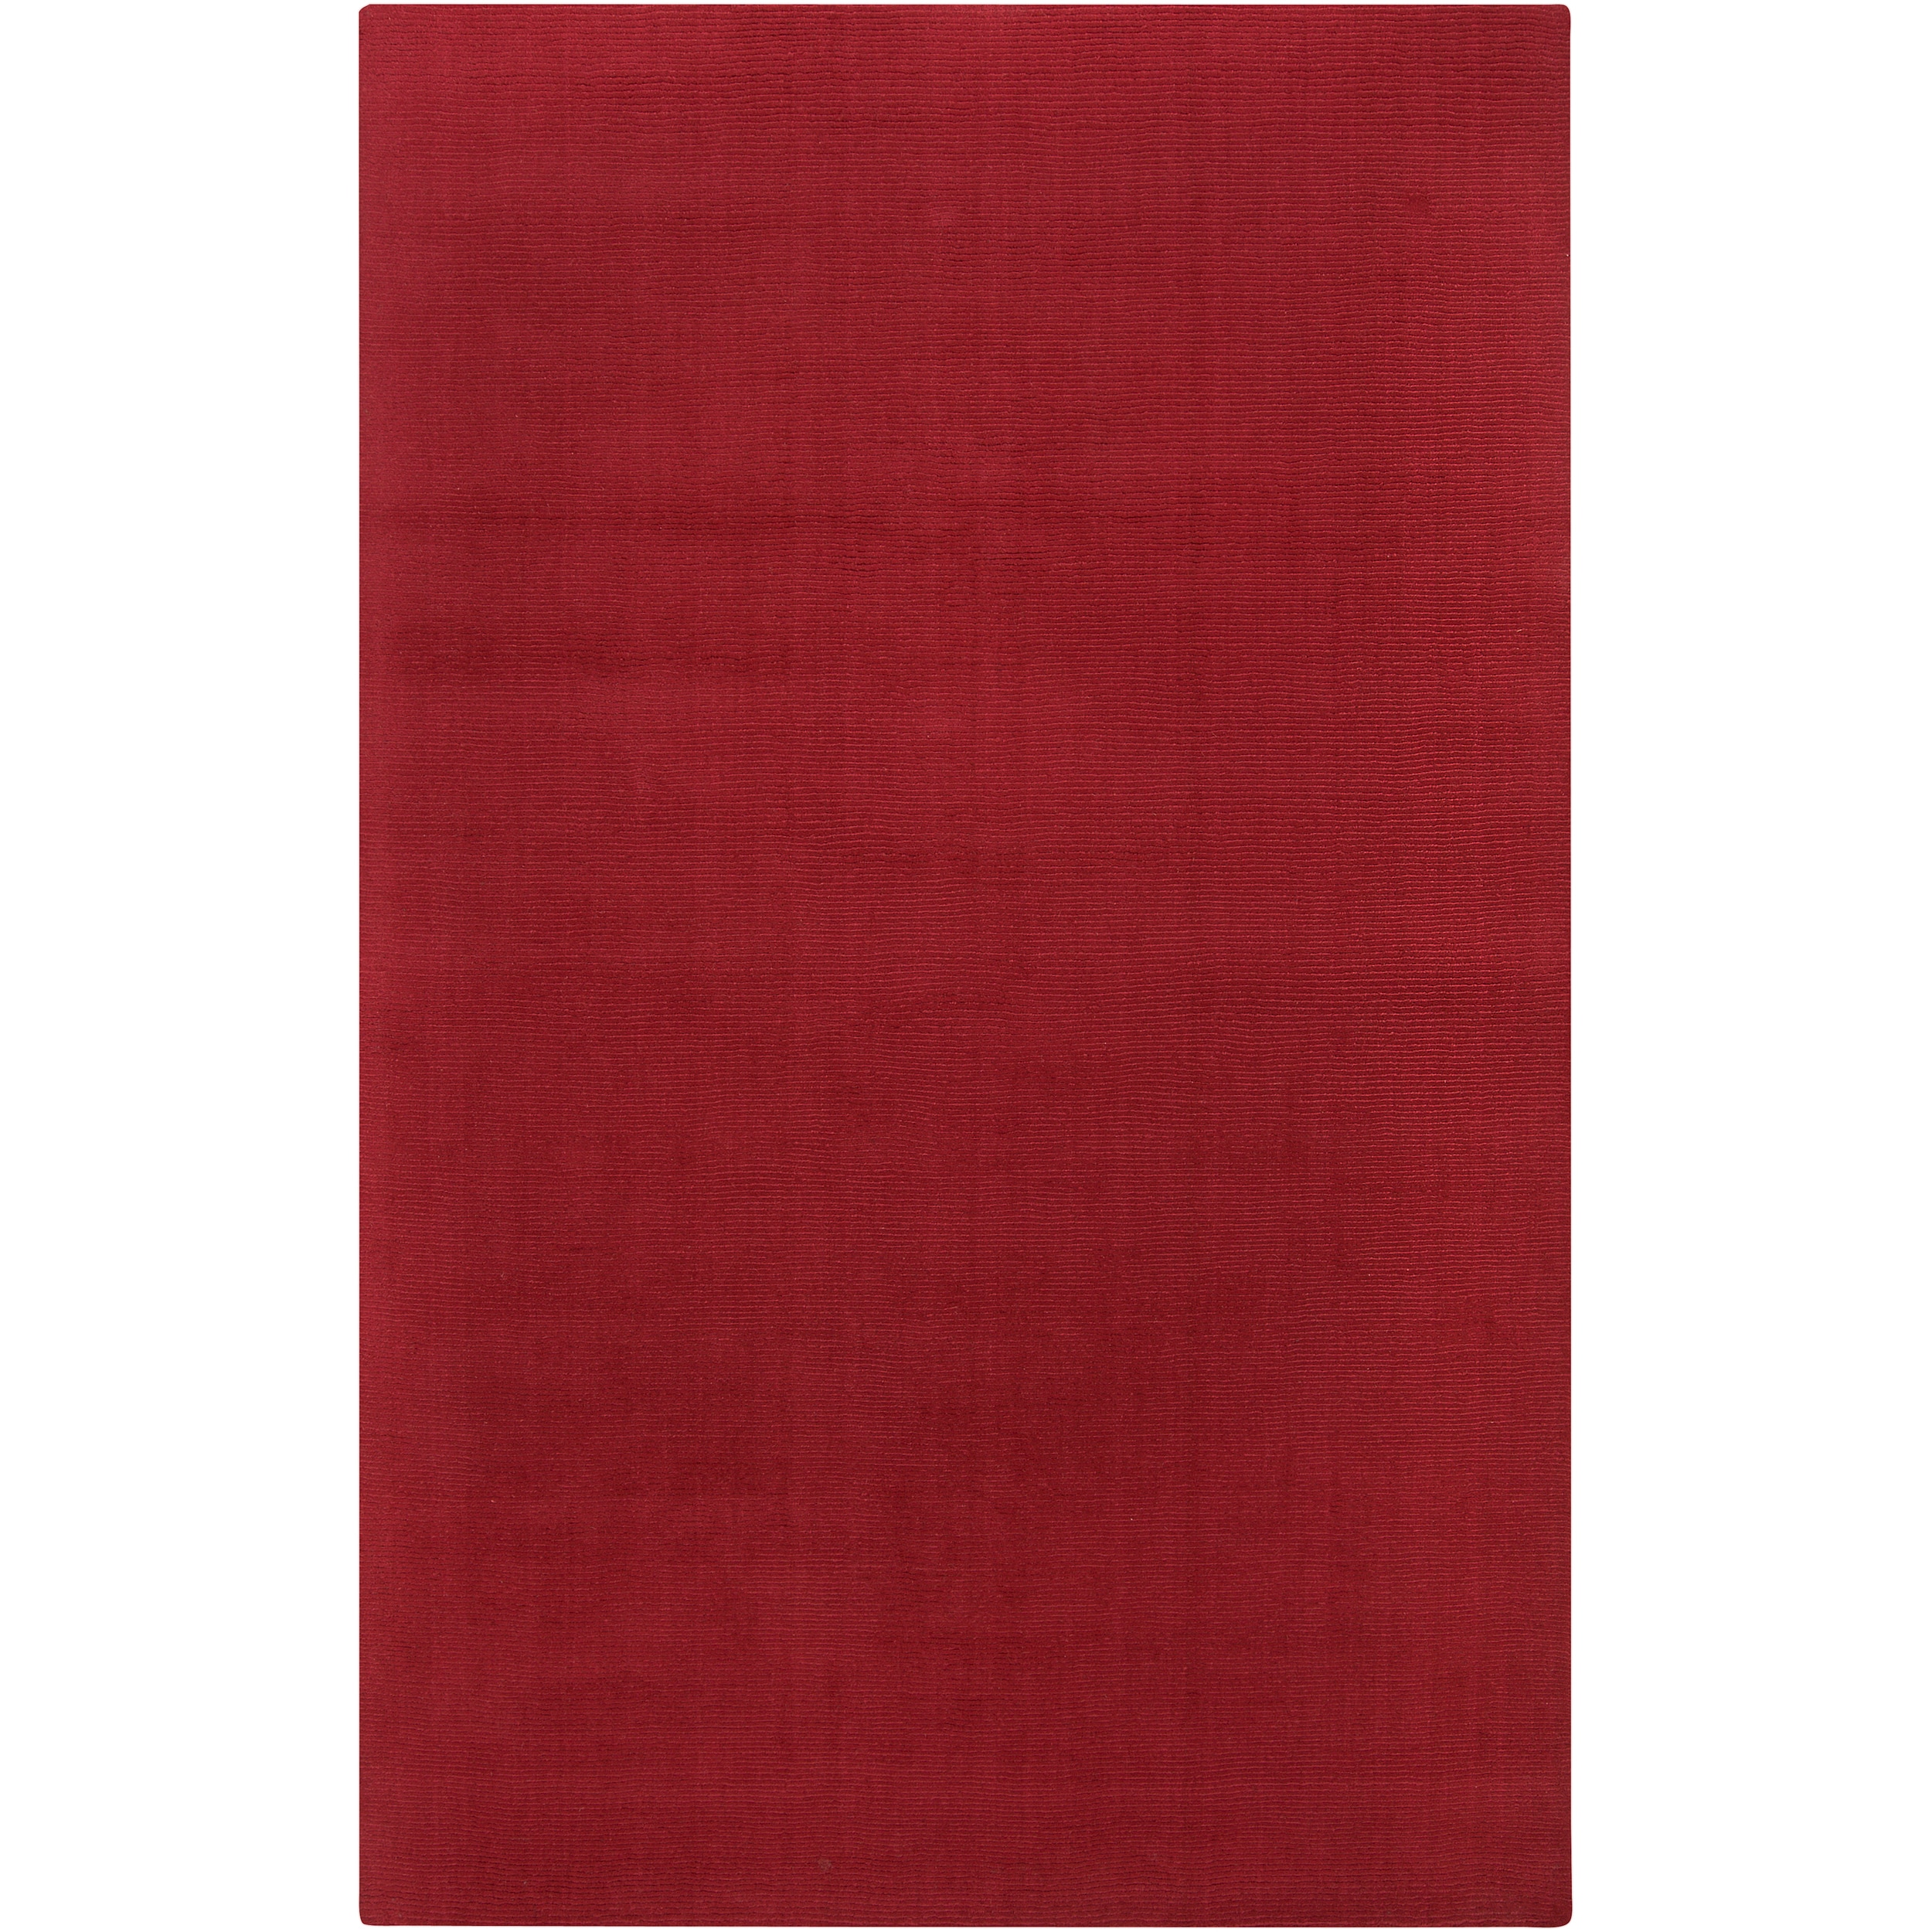 Hand-crafted Red Solid Casual Vaga Wool Area Rug (5' x 8')